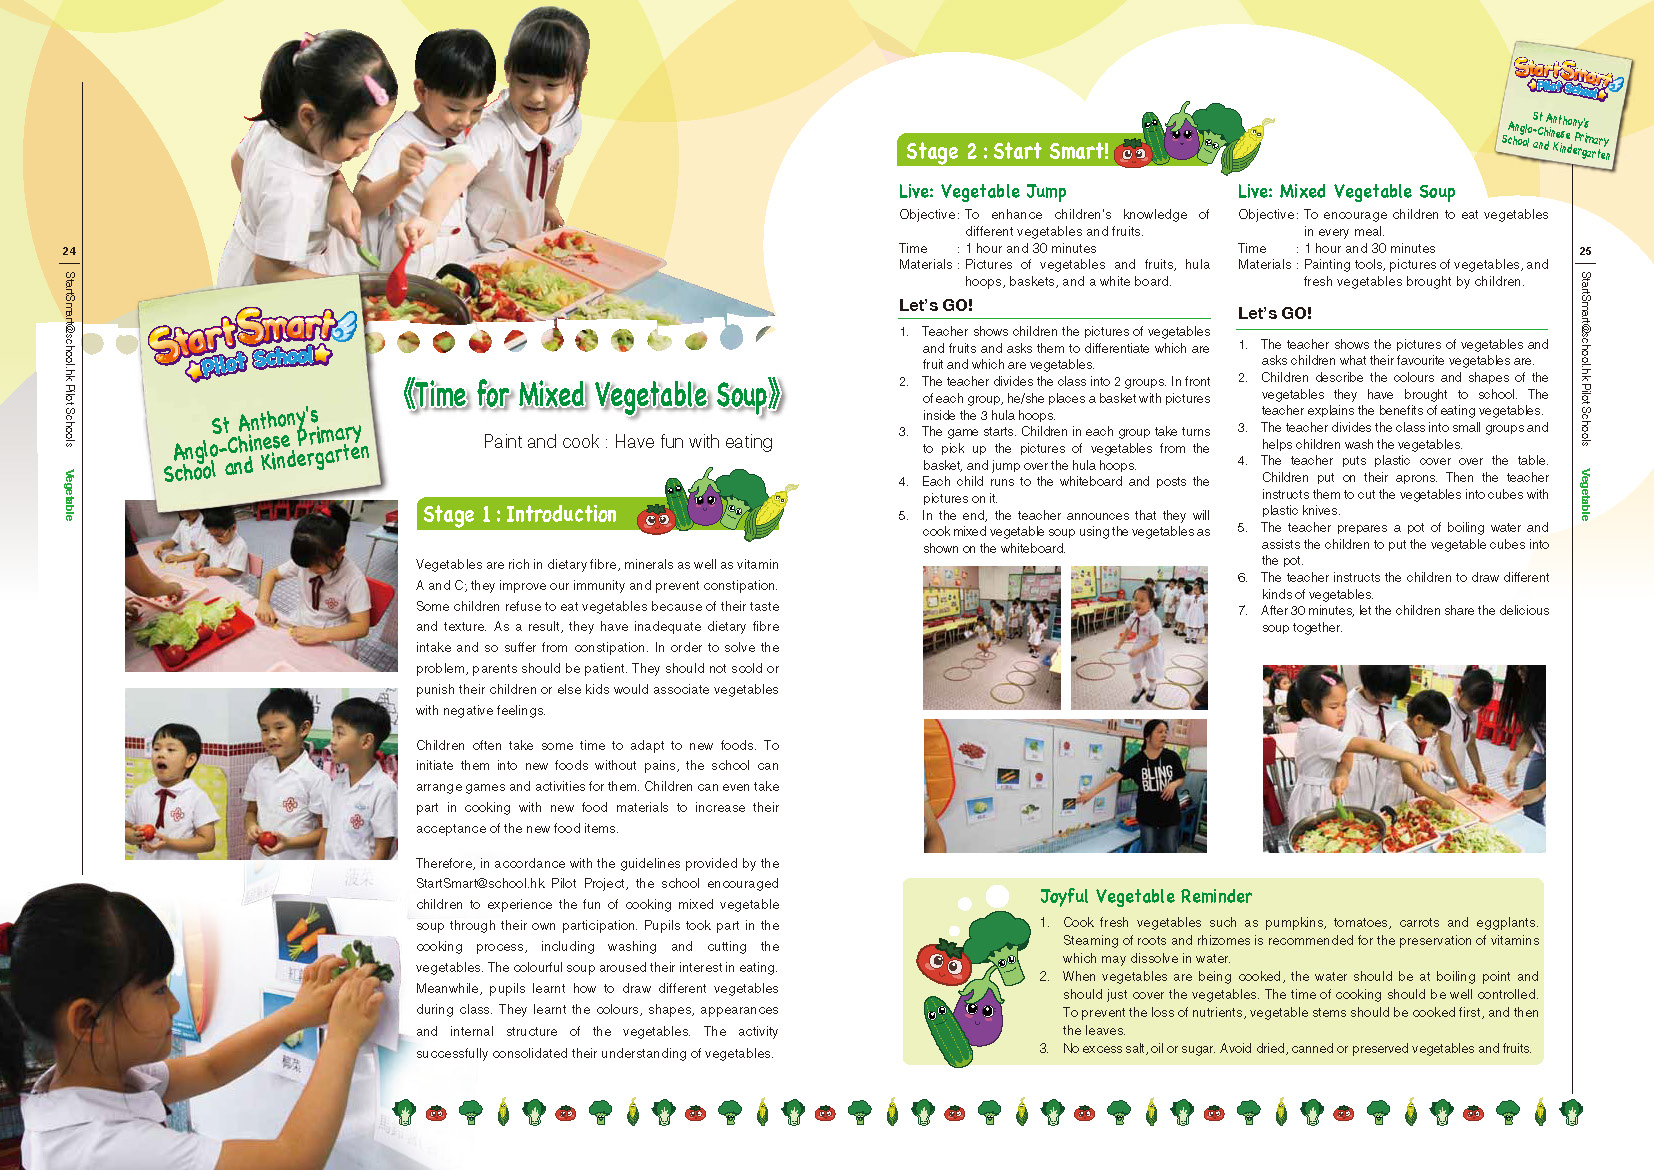 St Anthony's Anglo-Chinese Primary School and Kindergarten Page1